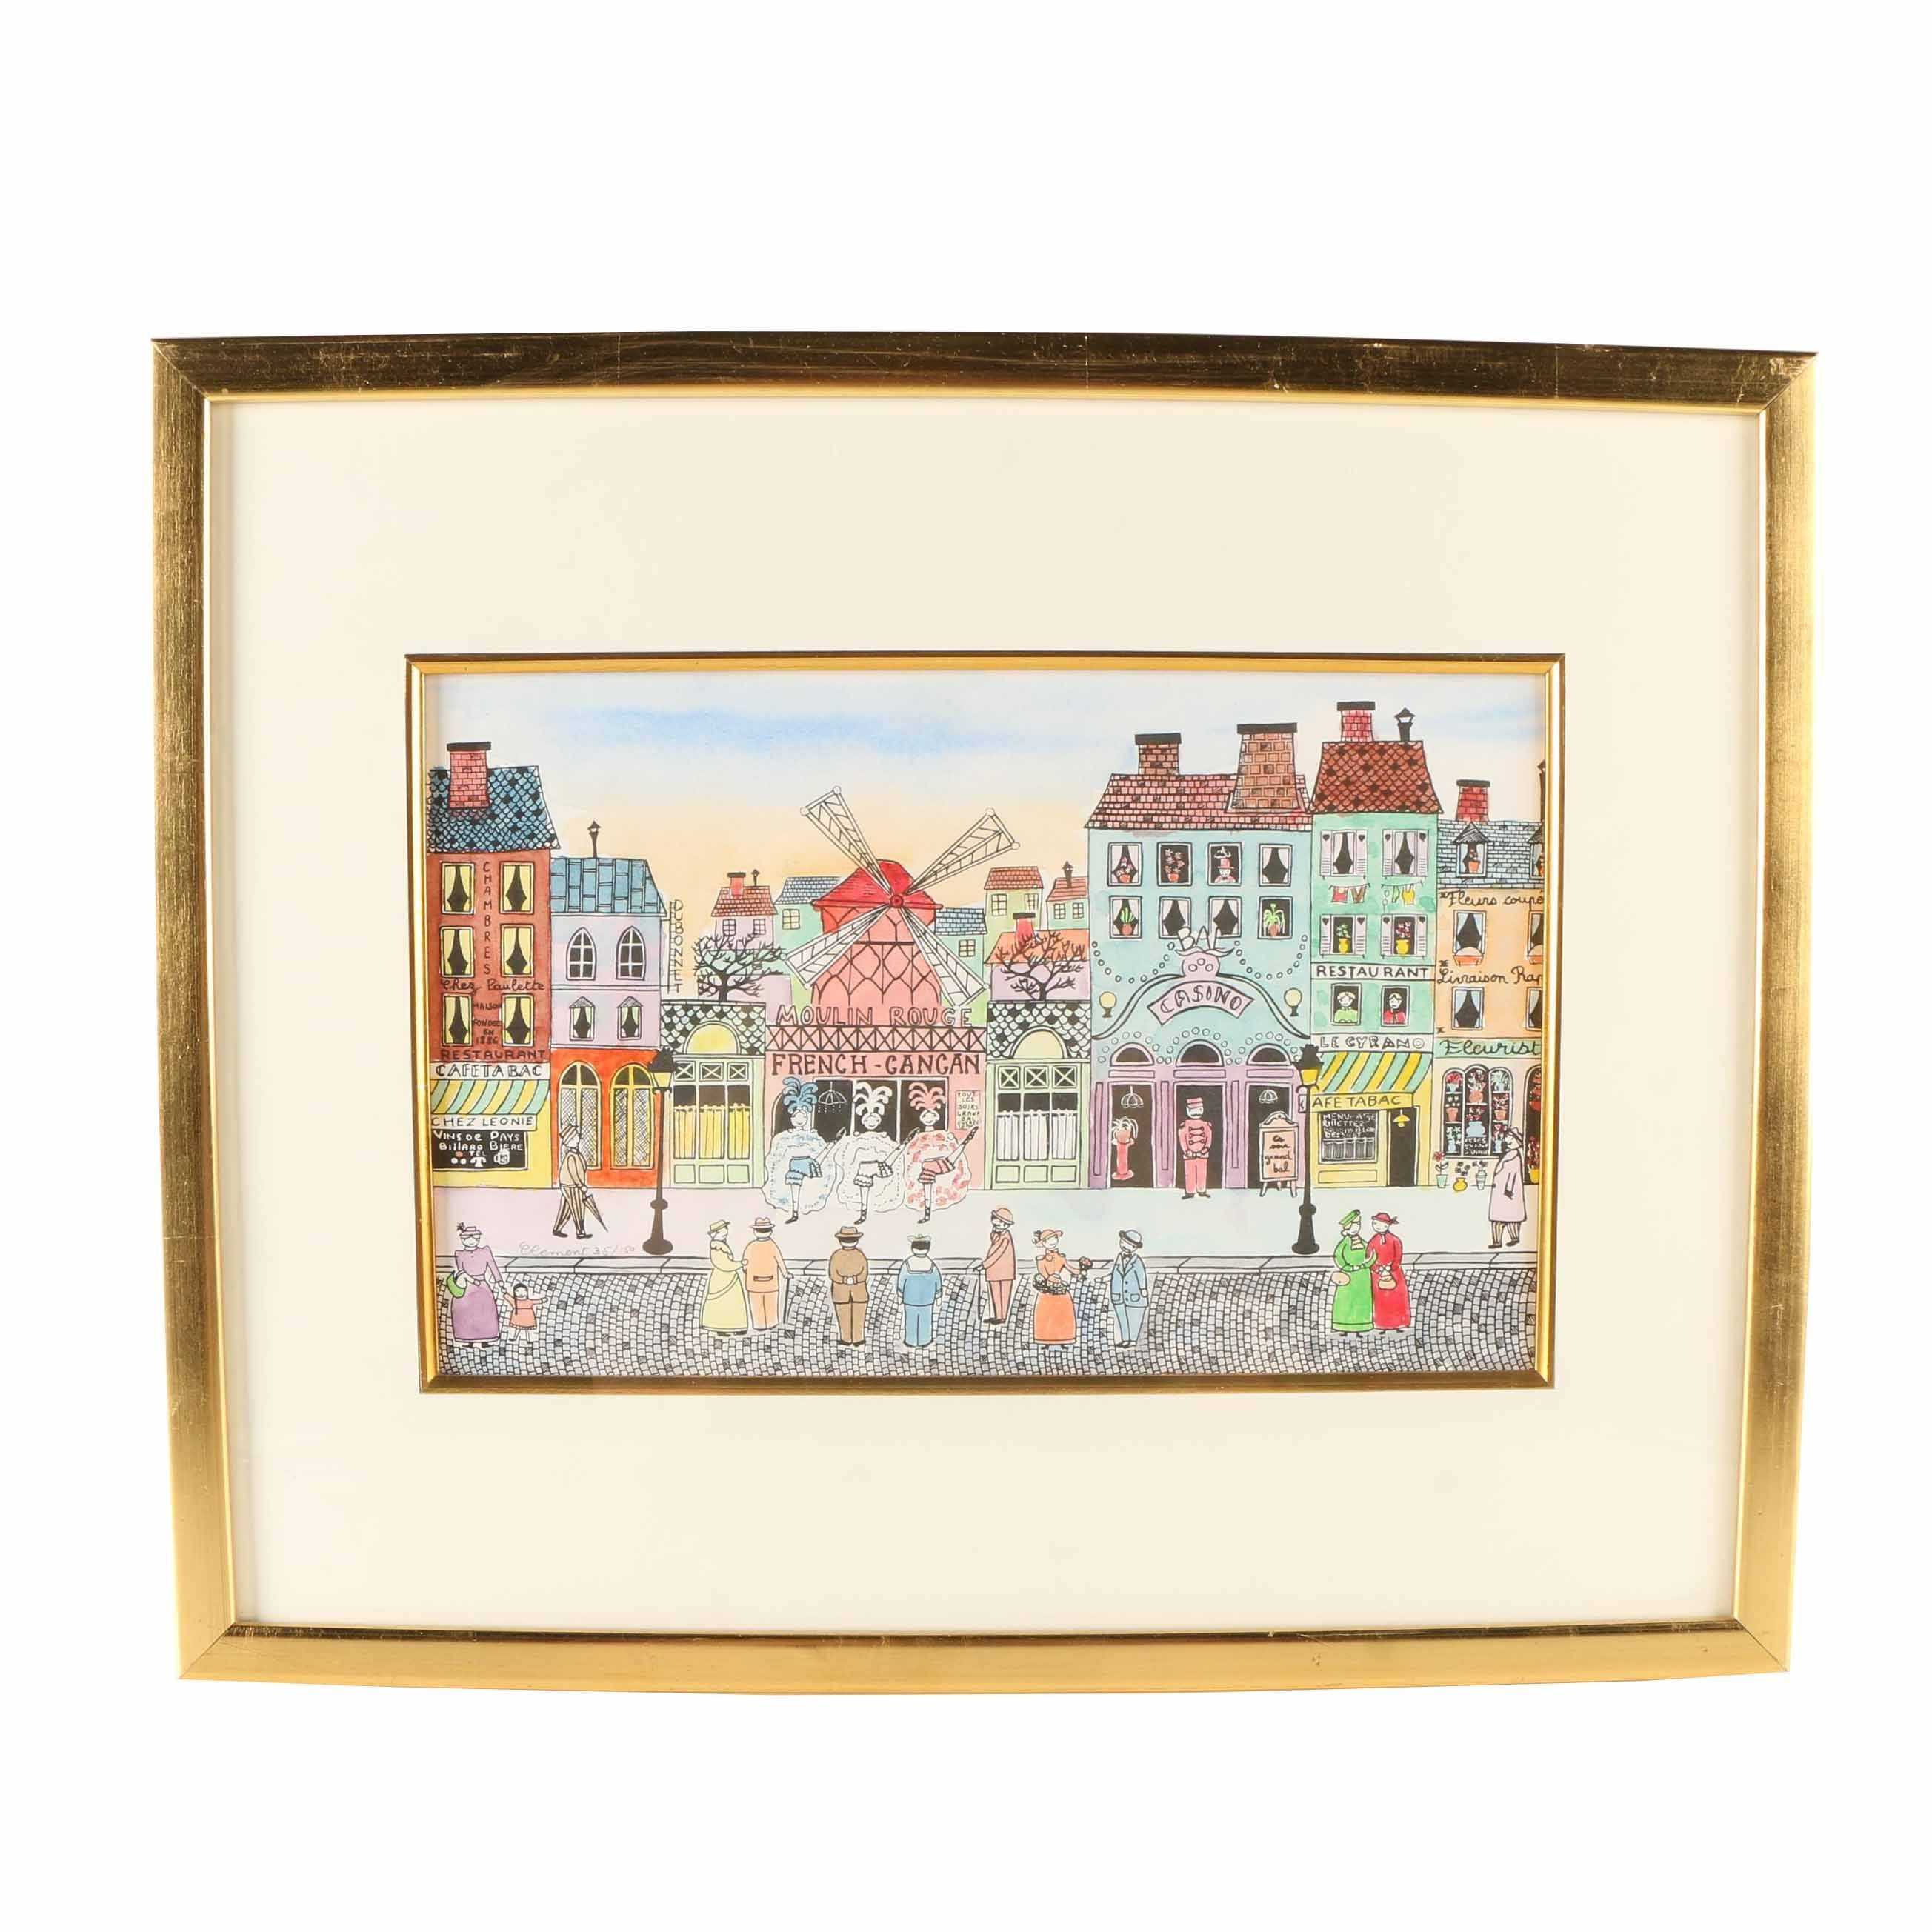 Framed Clement Limited Edition Hand Colored Lithograph of Parisian Cityscape